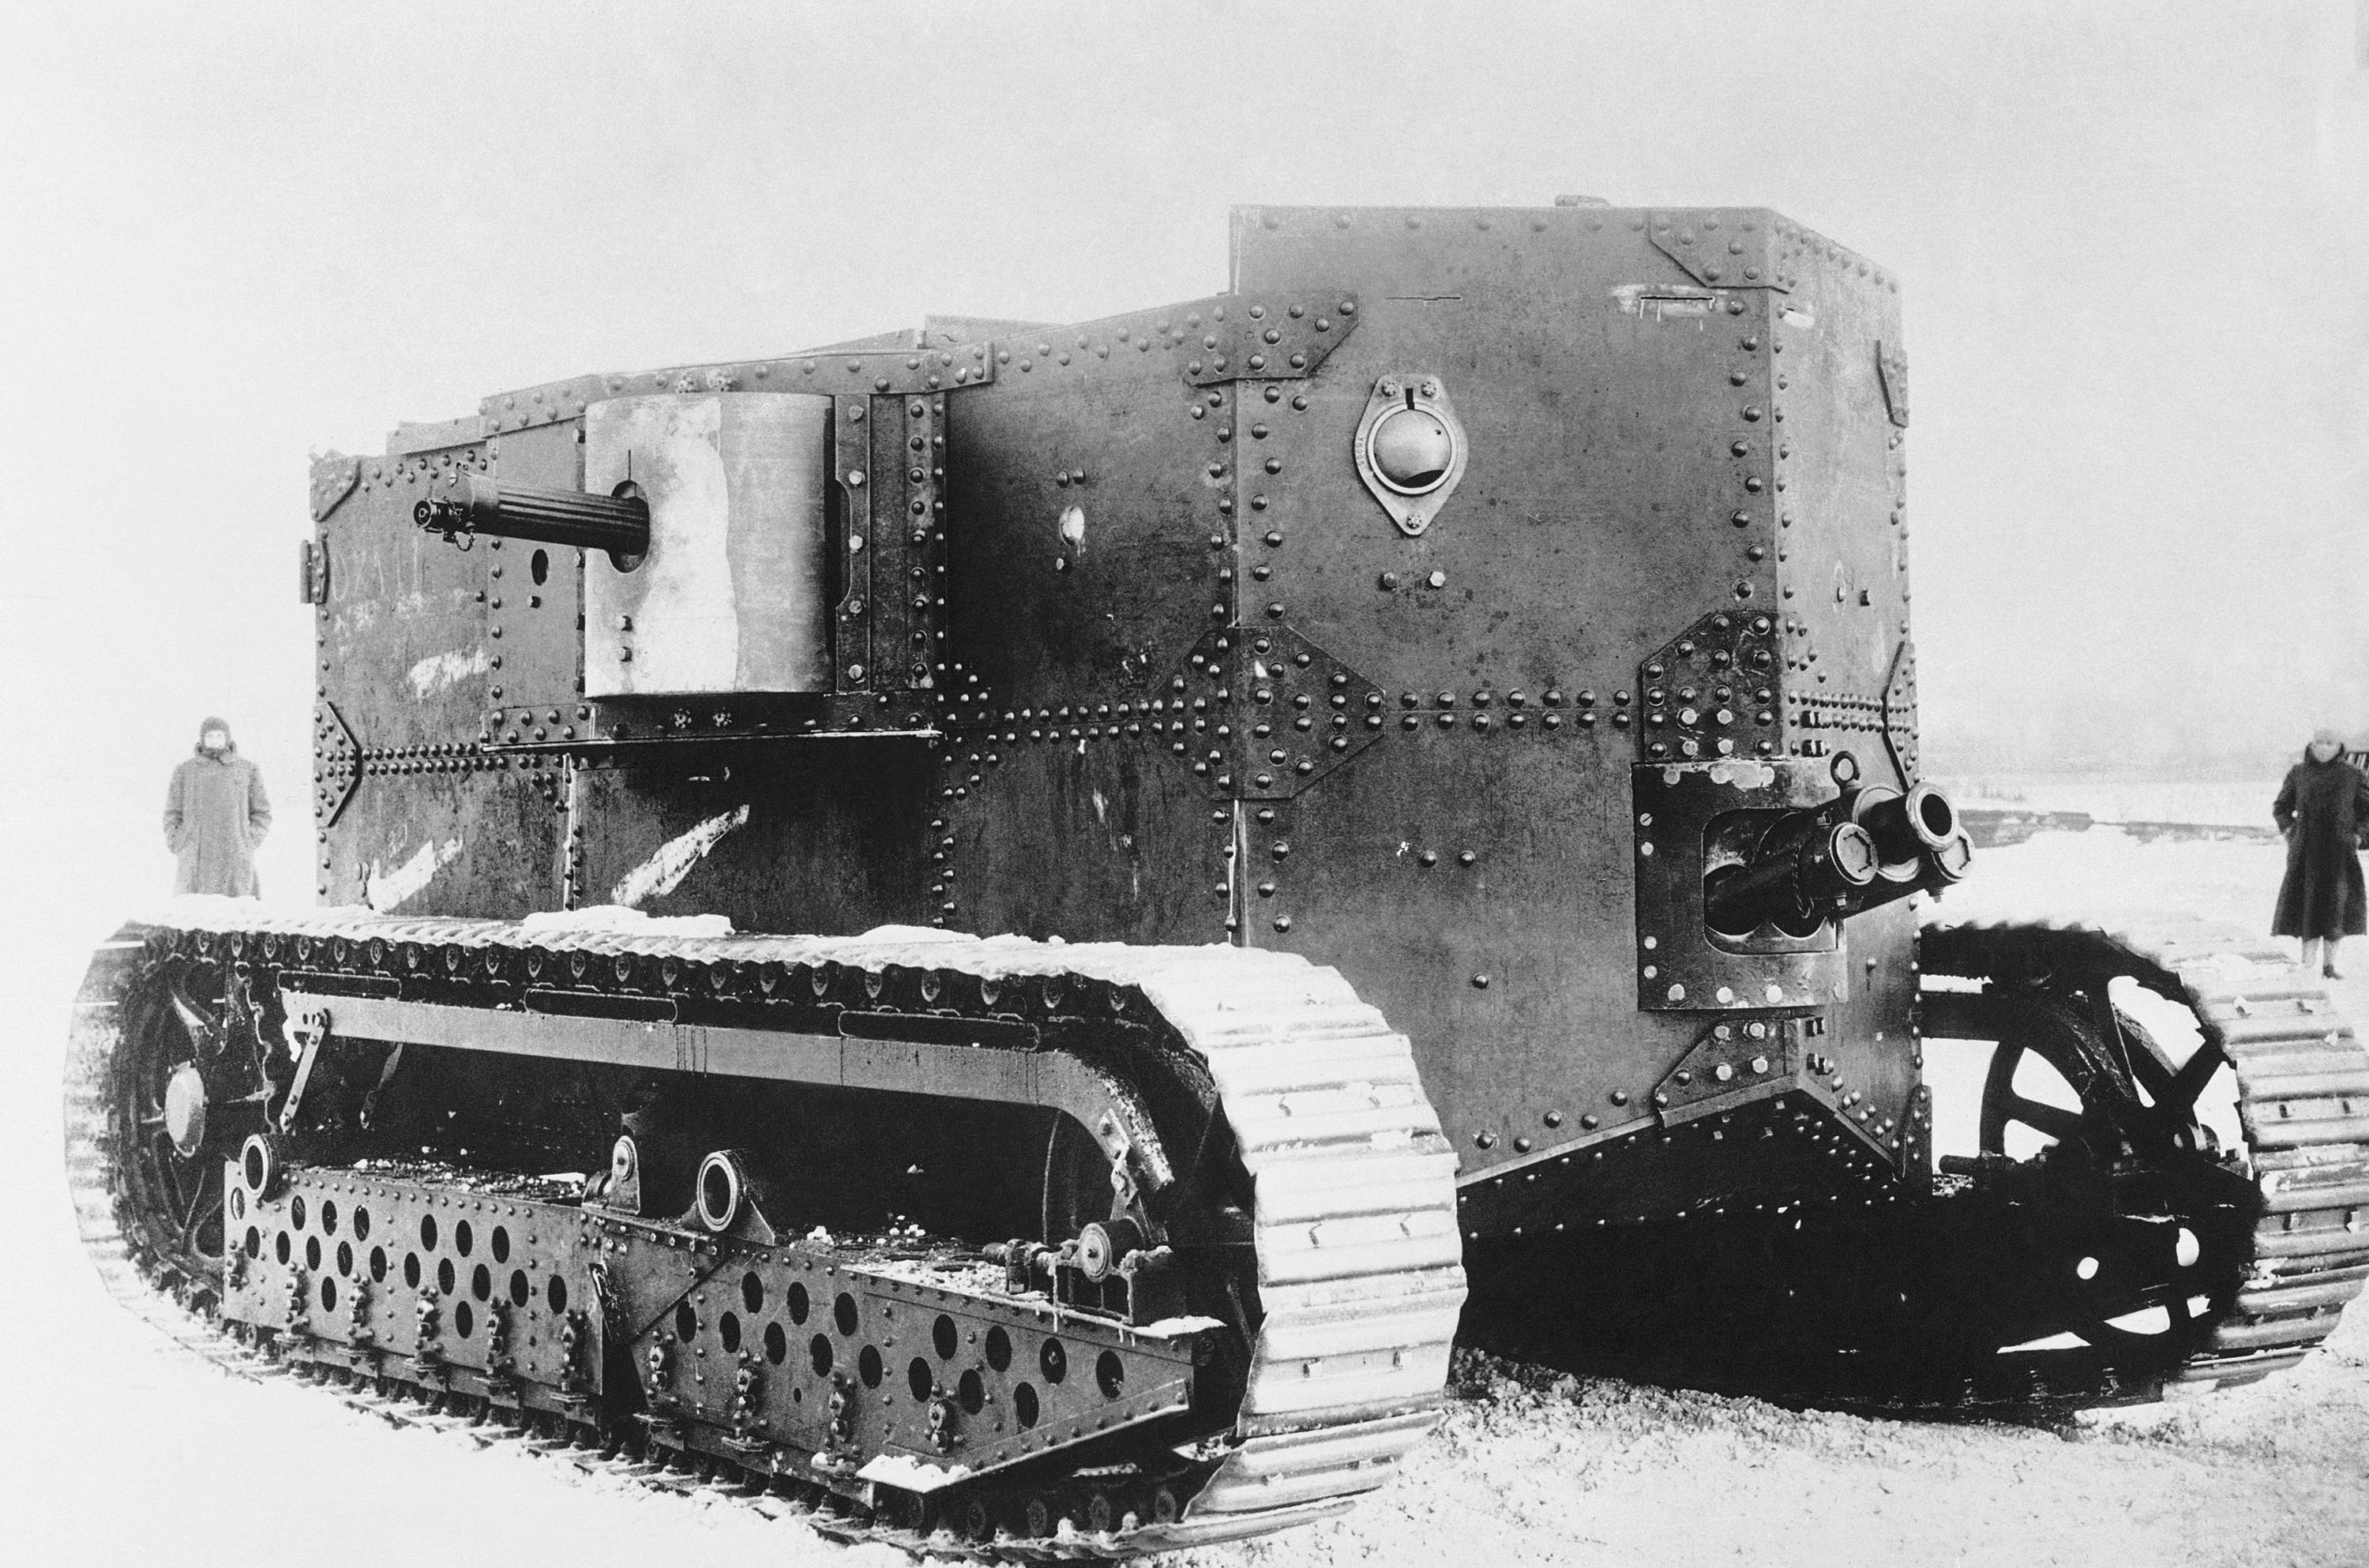 71 OF 100: In this 1917 file photo, an old type tank from World War I. Tanks came into use during World War I and increased the mobility of soldiers who were mainly fighting a trench war. Their design was taken from farm vehicles.